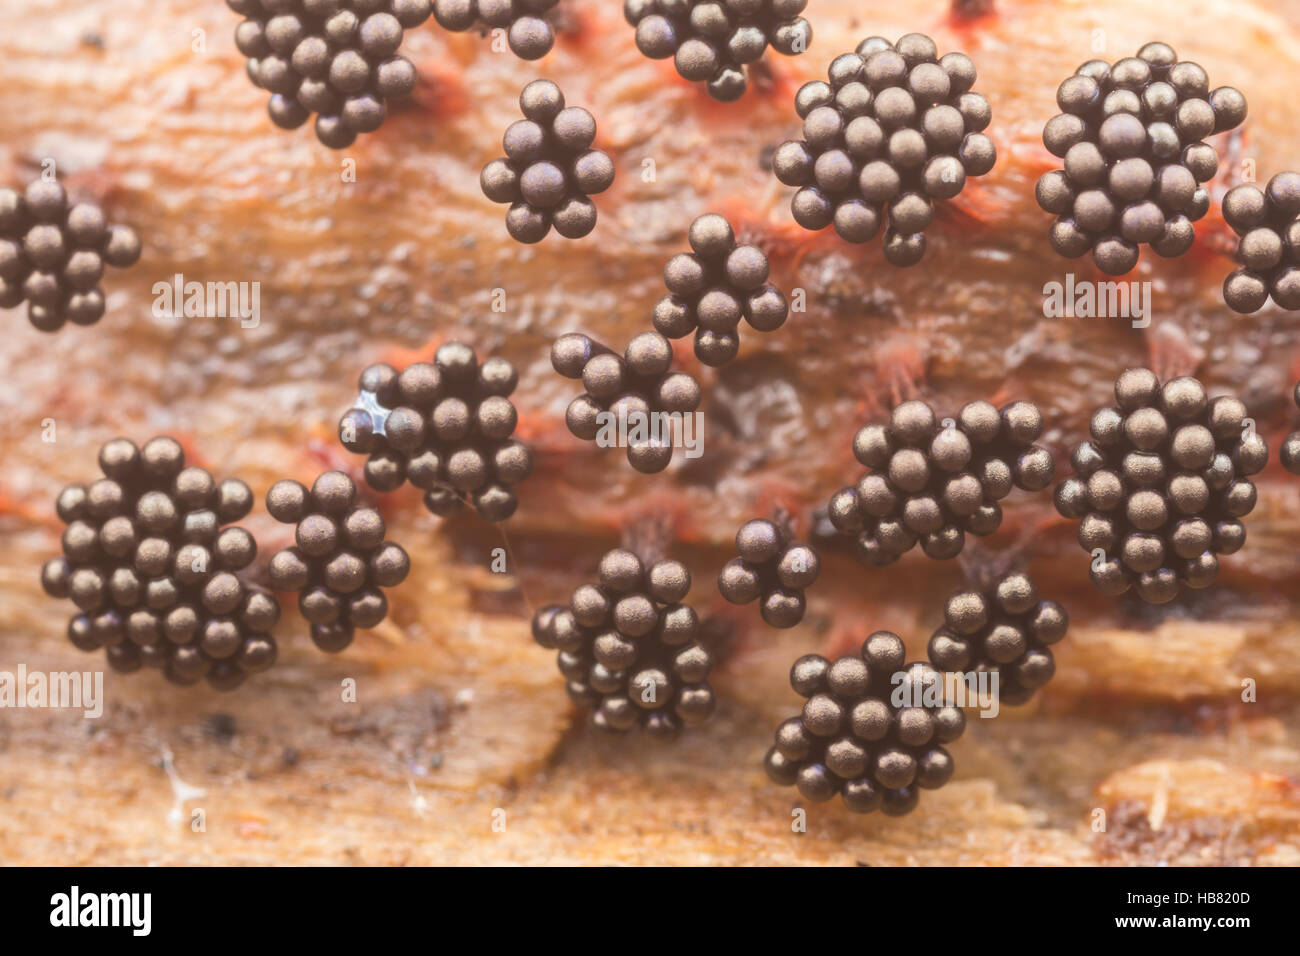 Fruiting bodies of Multigoblet Slime Mold (Metatrichia vesparium) grow on the side of a fallen dead tree. - Stock Image